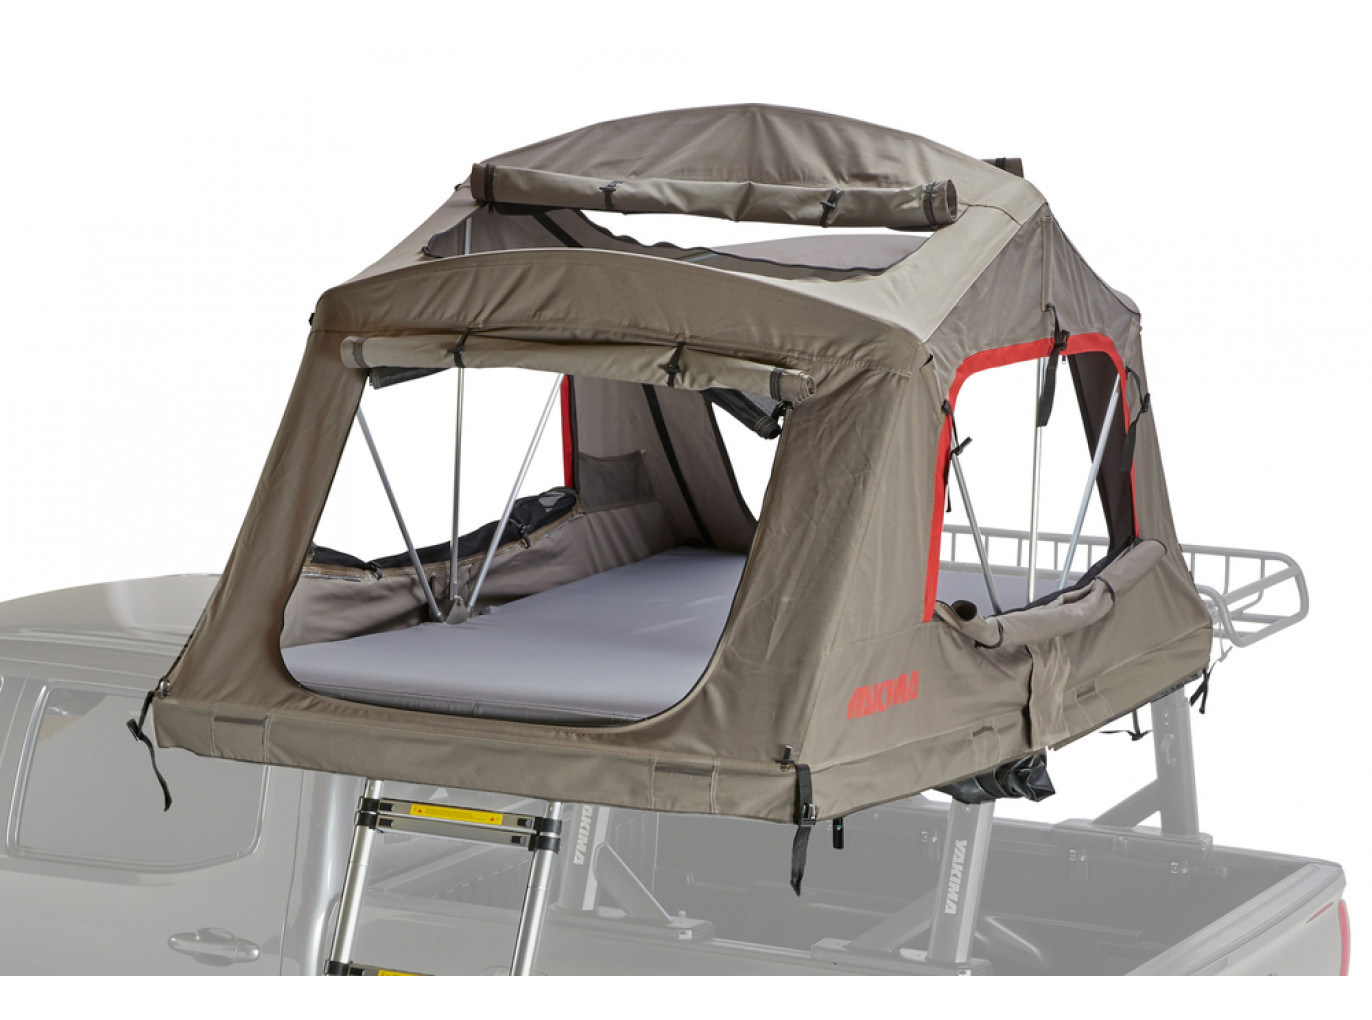 Yakima SkyRise Rooftop Tent - Heavy Duty 4 Season - Medium - Tan